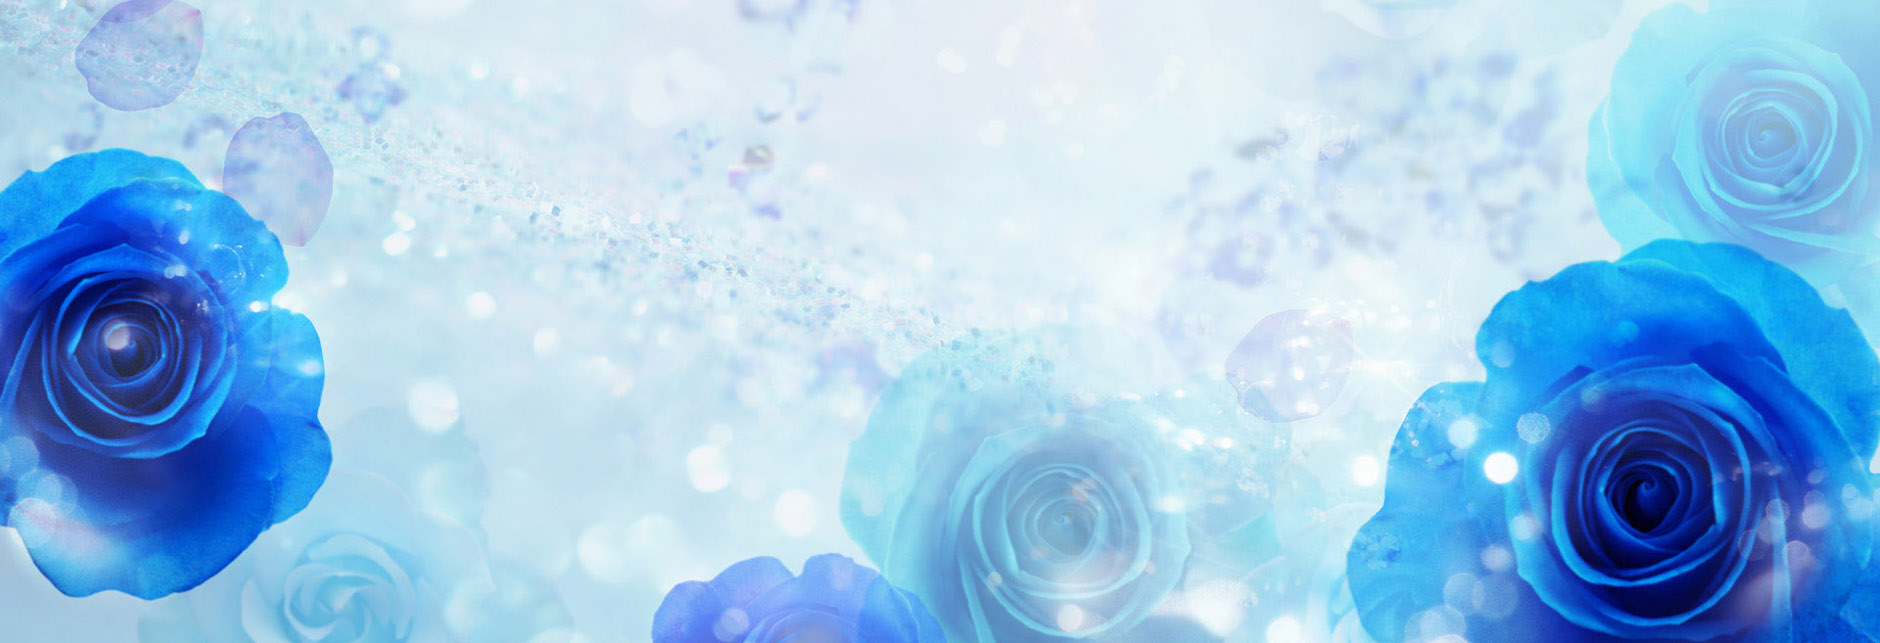 204279-blue-flower-background.jpg